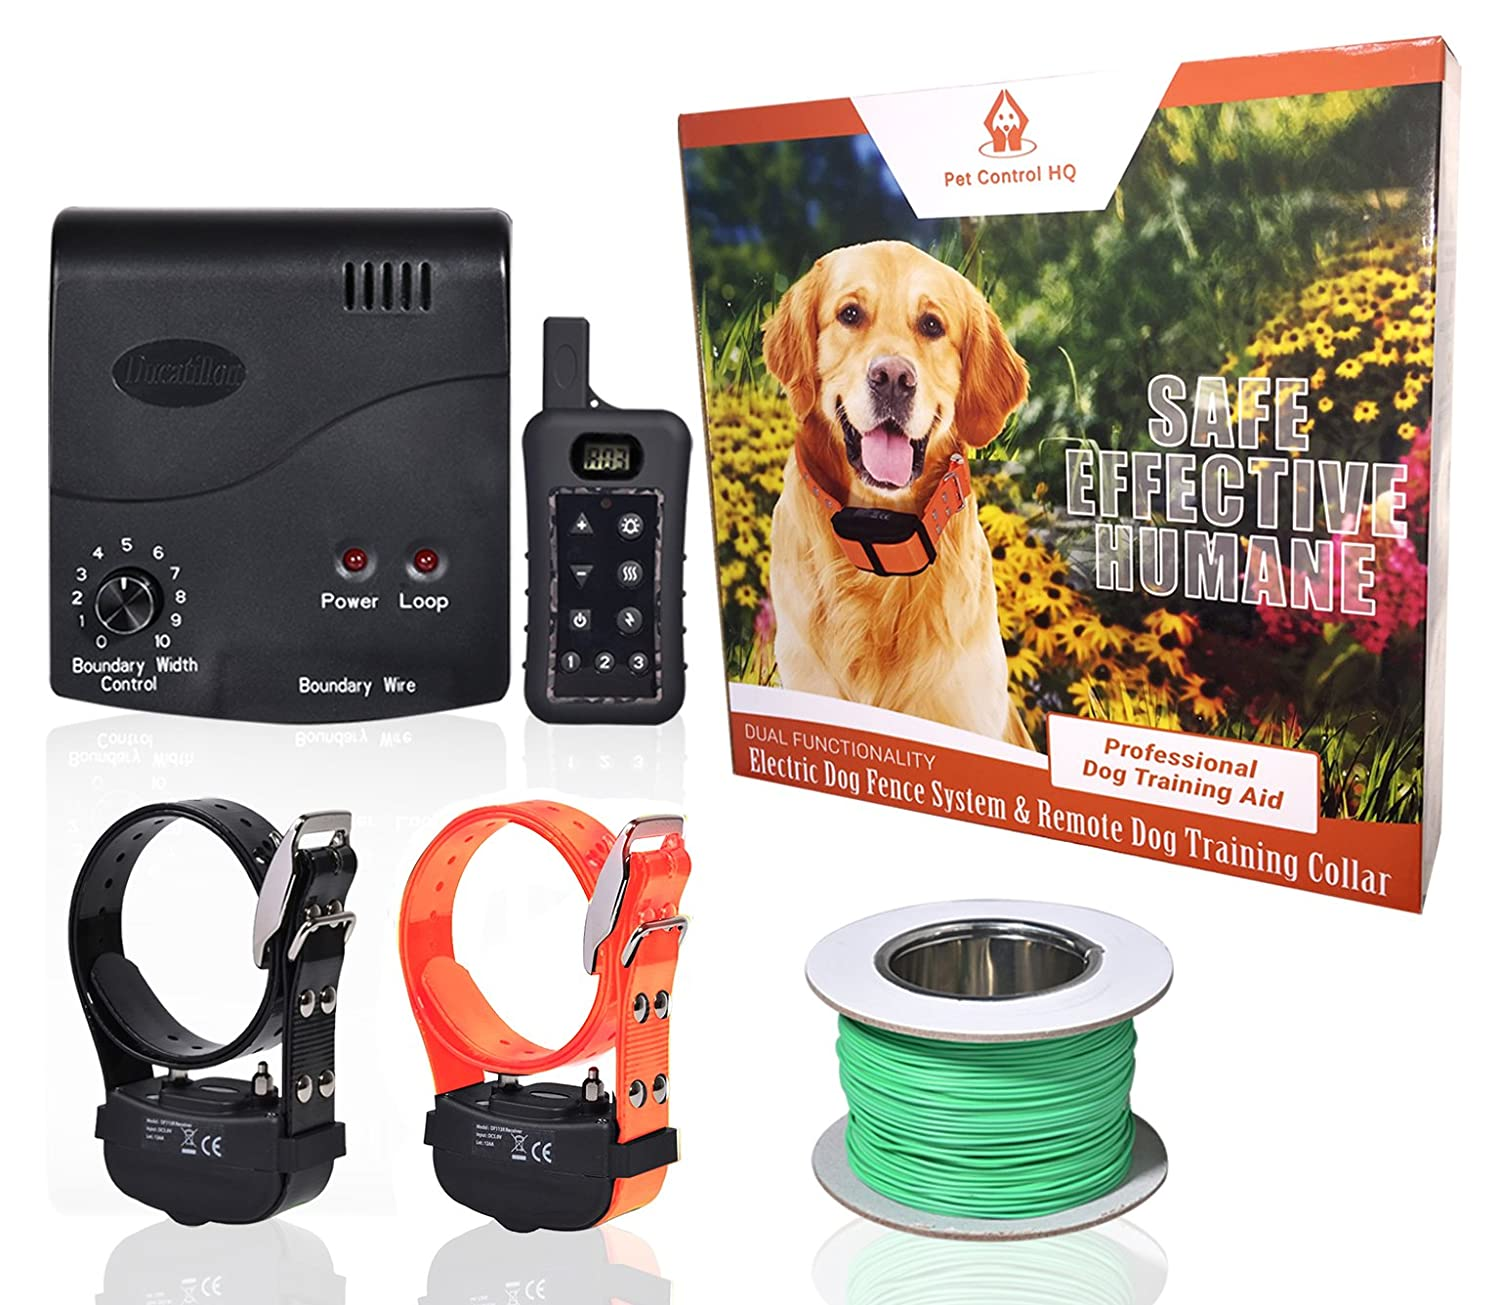 Pet Control HQ Wireless Electric Dog Fence System